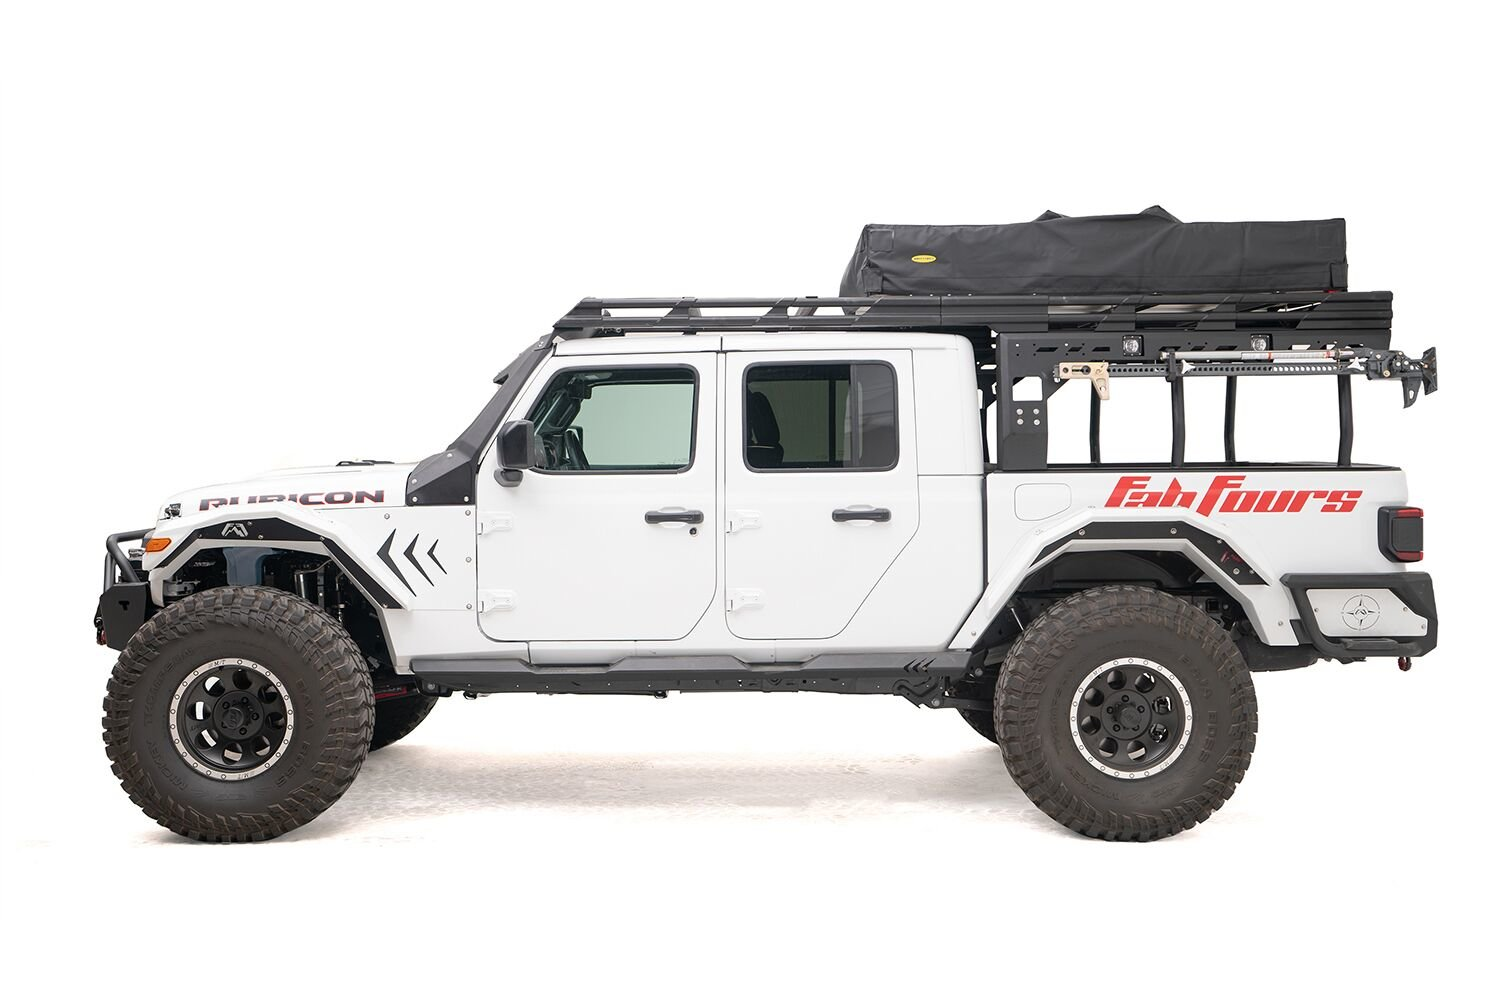 fab fours overland rack extension requires overland rack for 2020 jeep gladiator jt